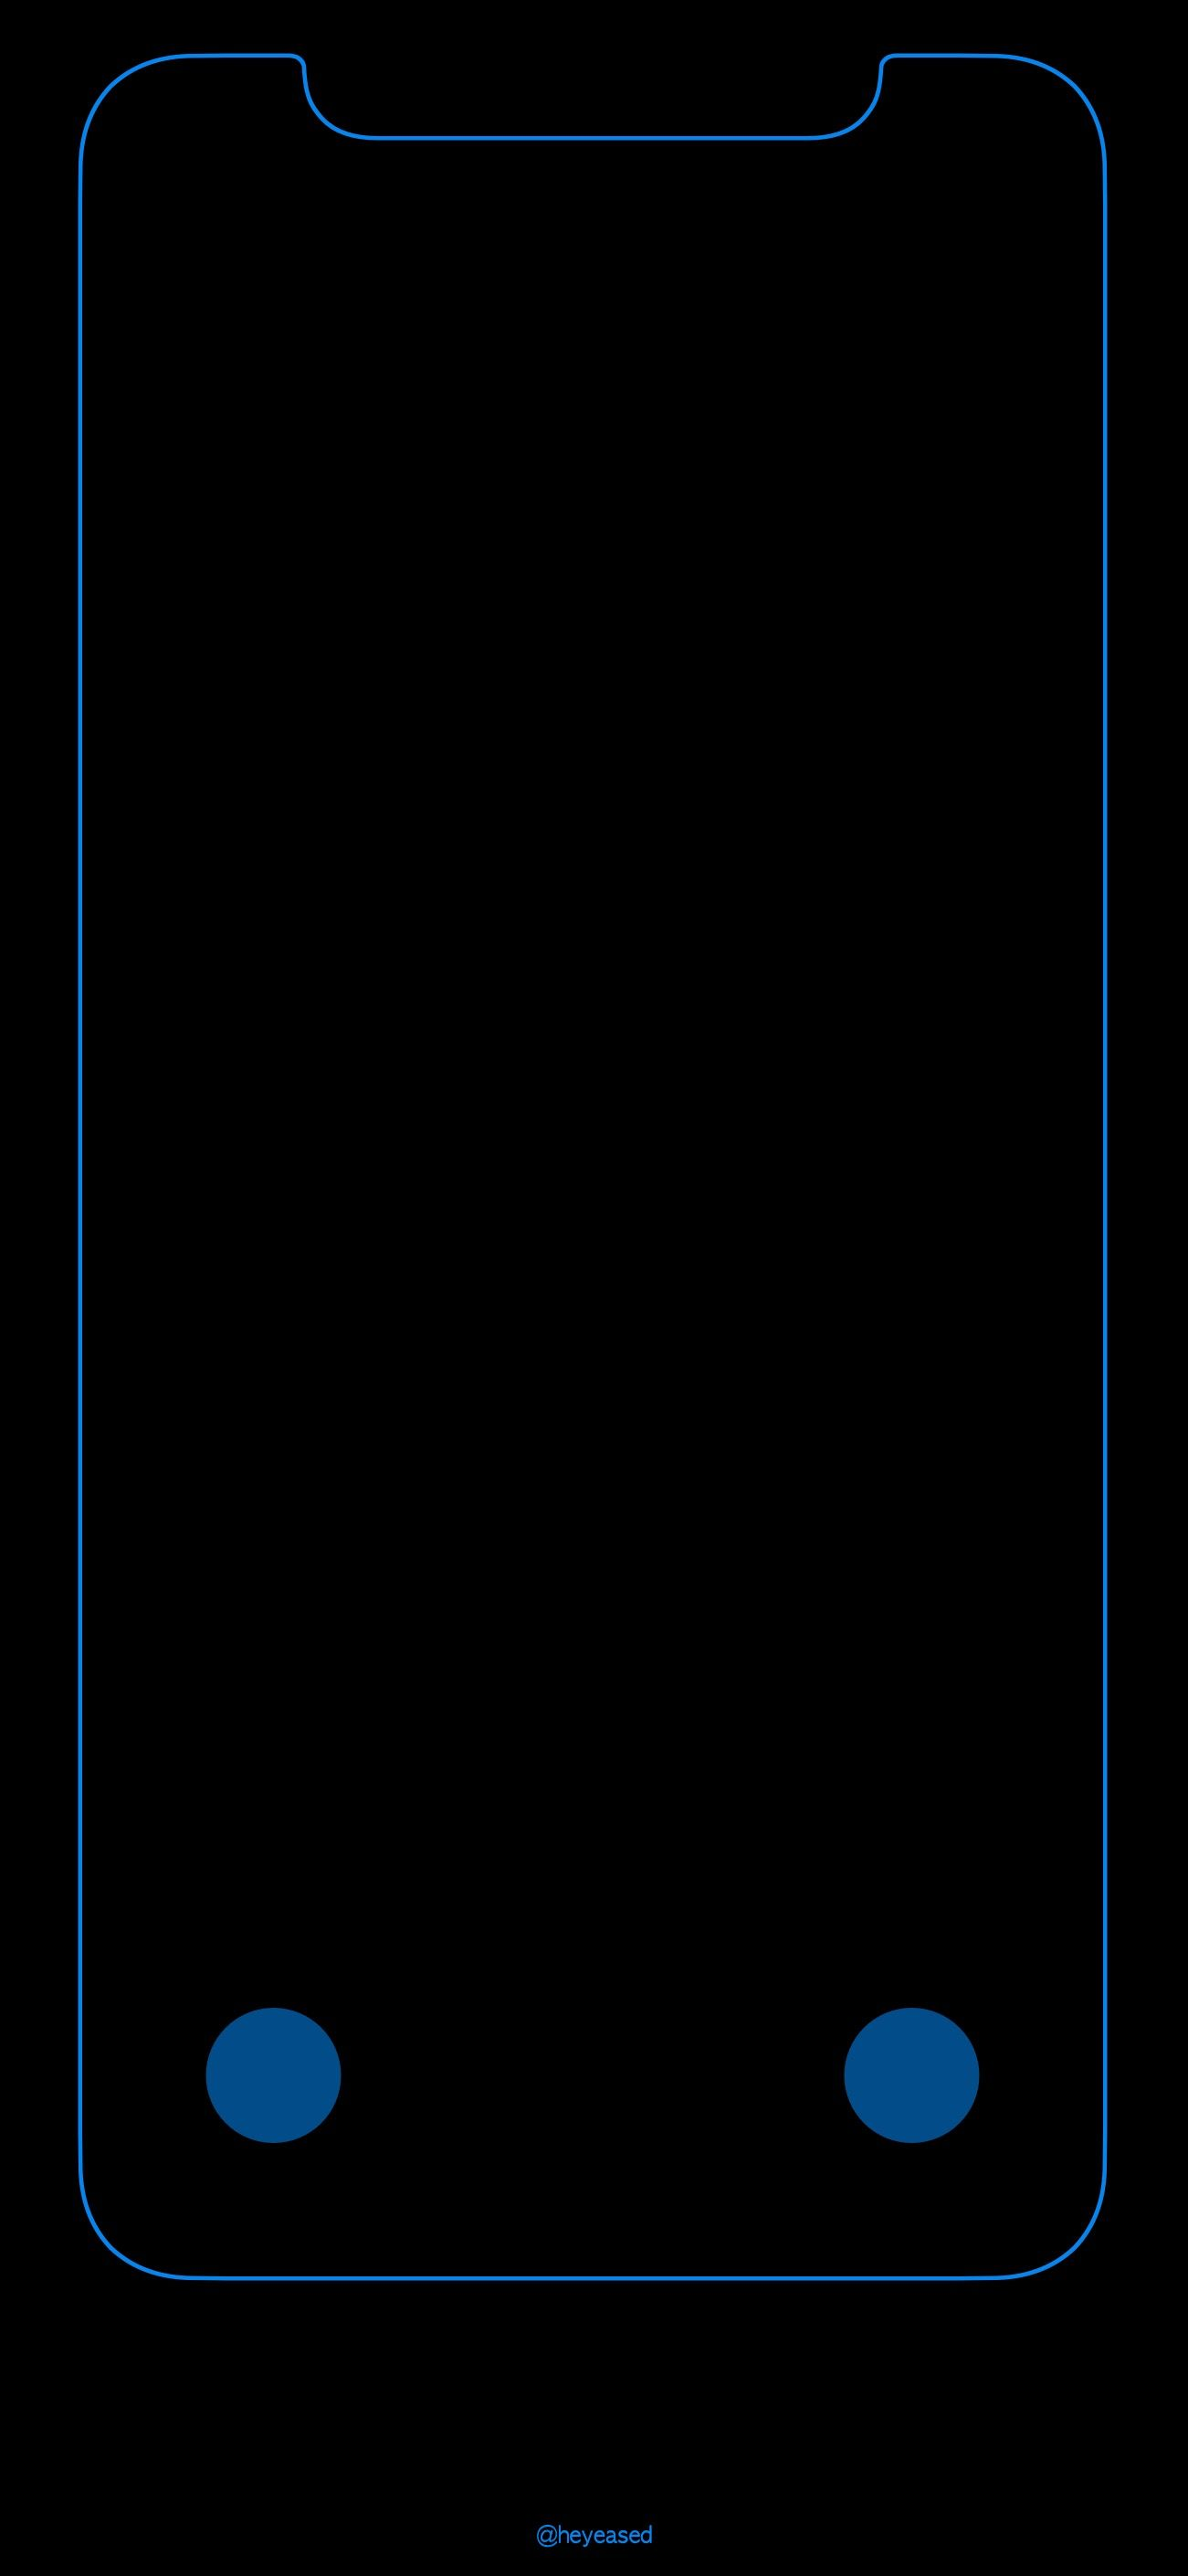 iPhone X -Blue Locked Screen Outline ...